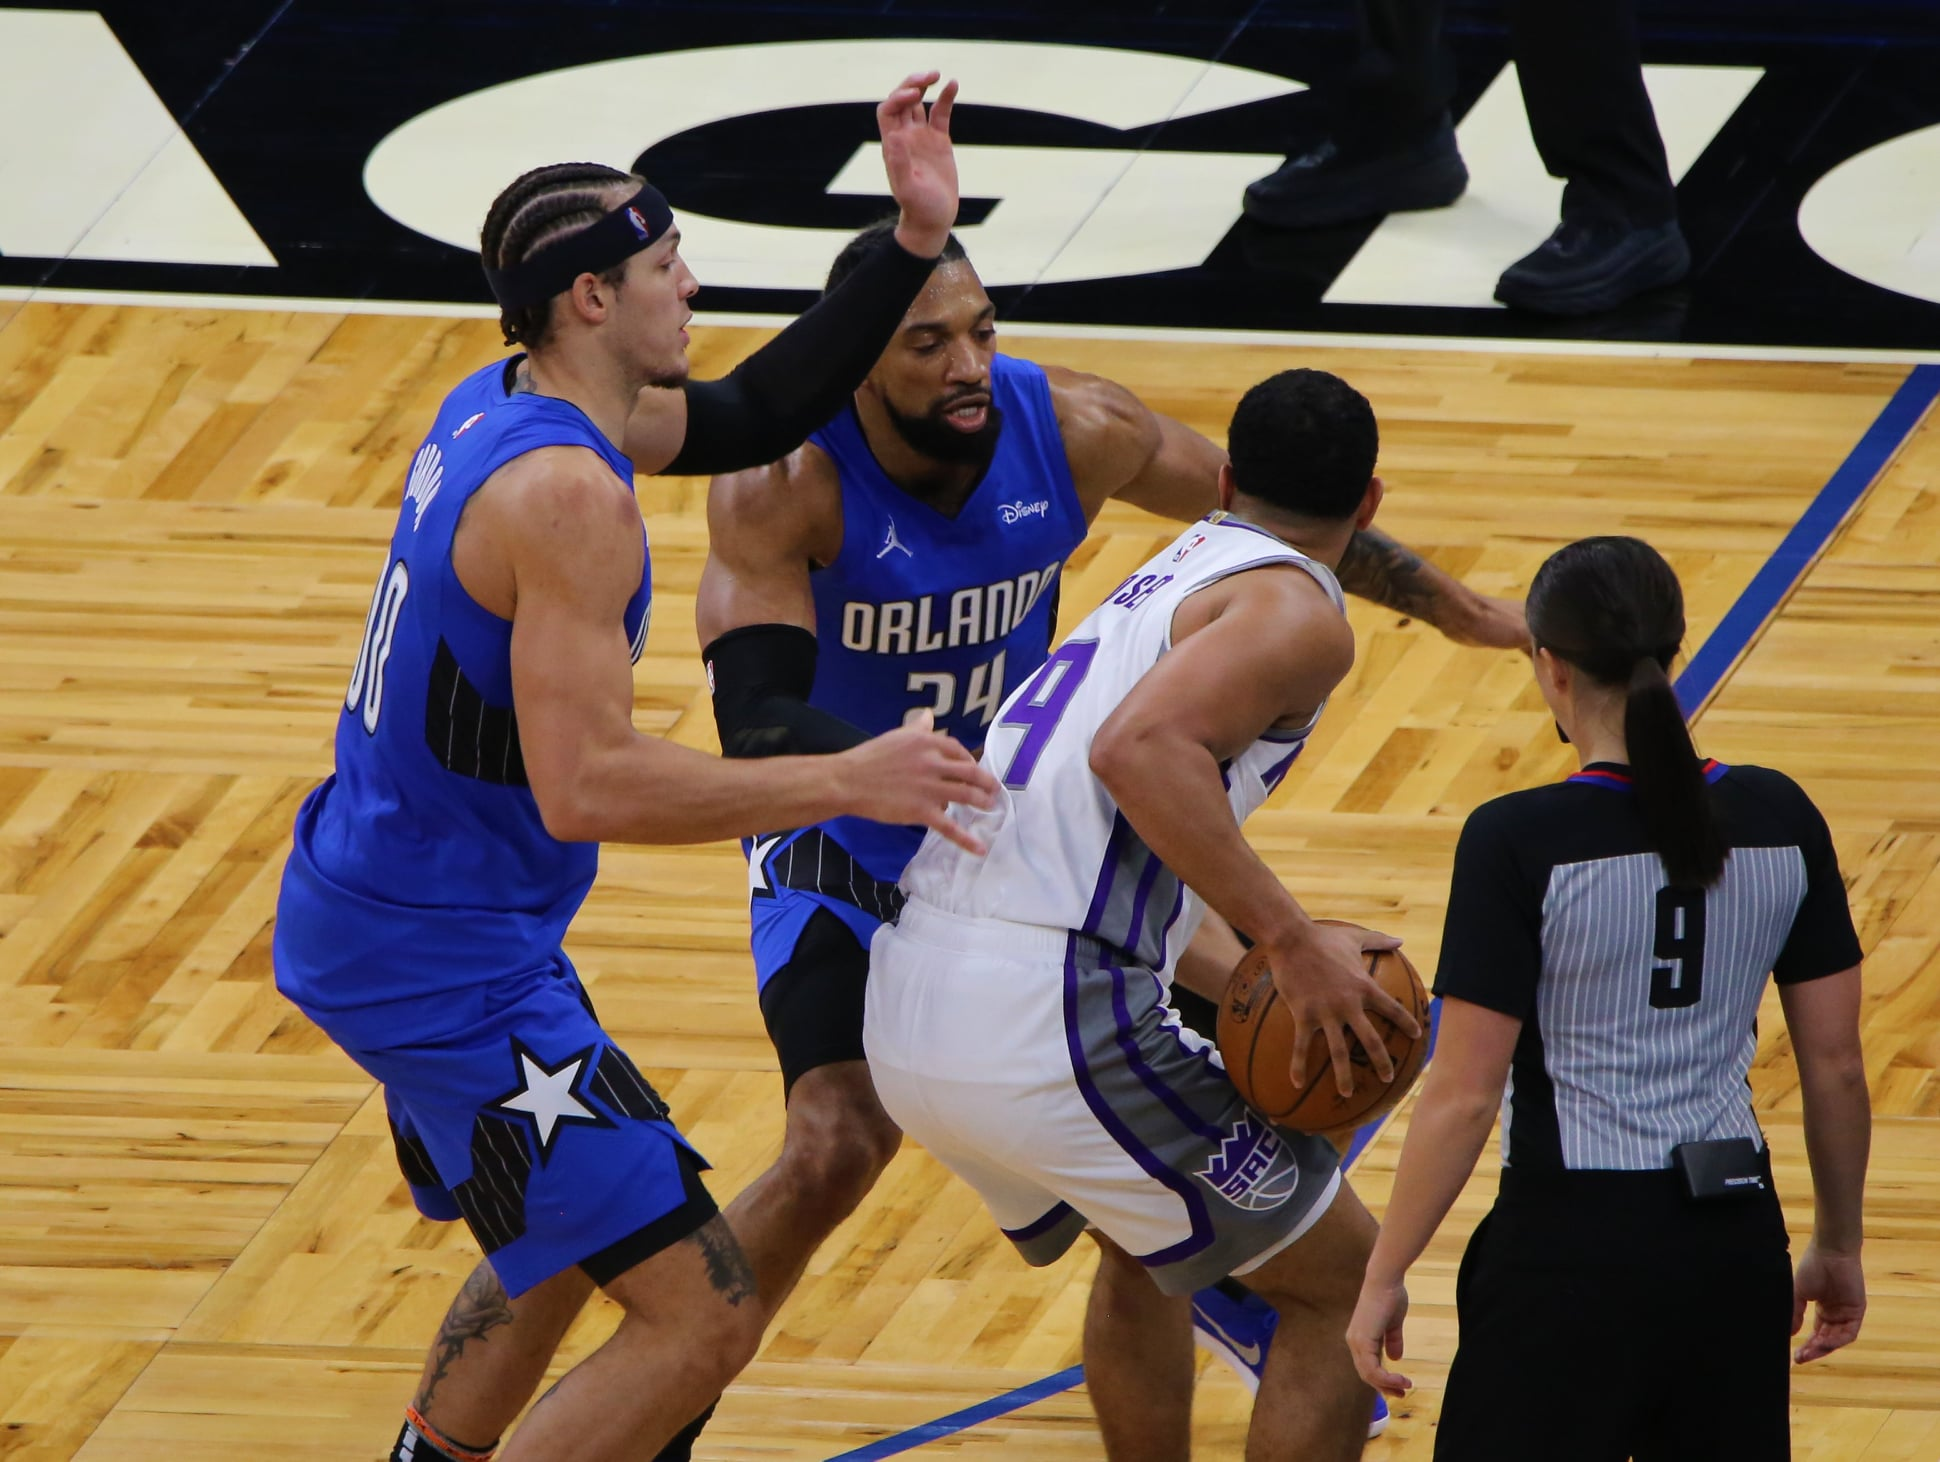 Khem Birch (center) and Aaron Gordon (left) apply pressure during their matchup against the Sacramento Kings at Amway Center Wednesday, January 27, 2021. Photo: J. Willie David III/Florida National News.